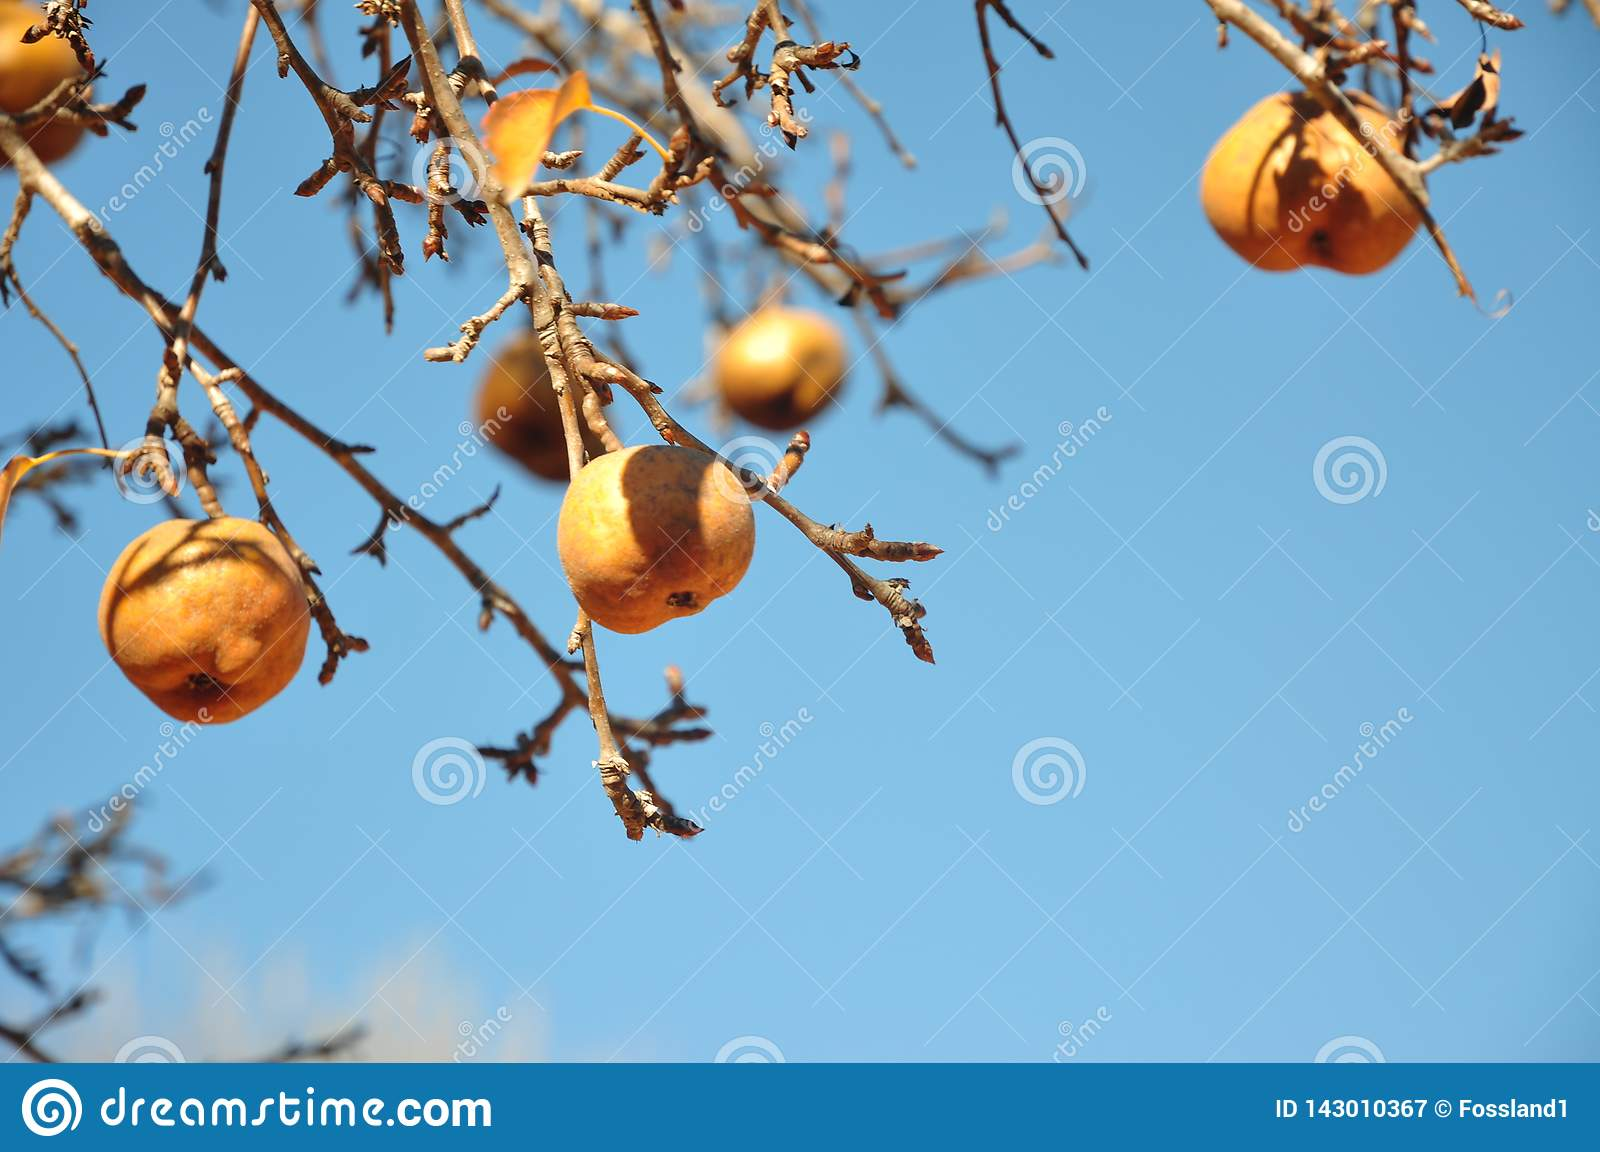 Golden pears on pear tree